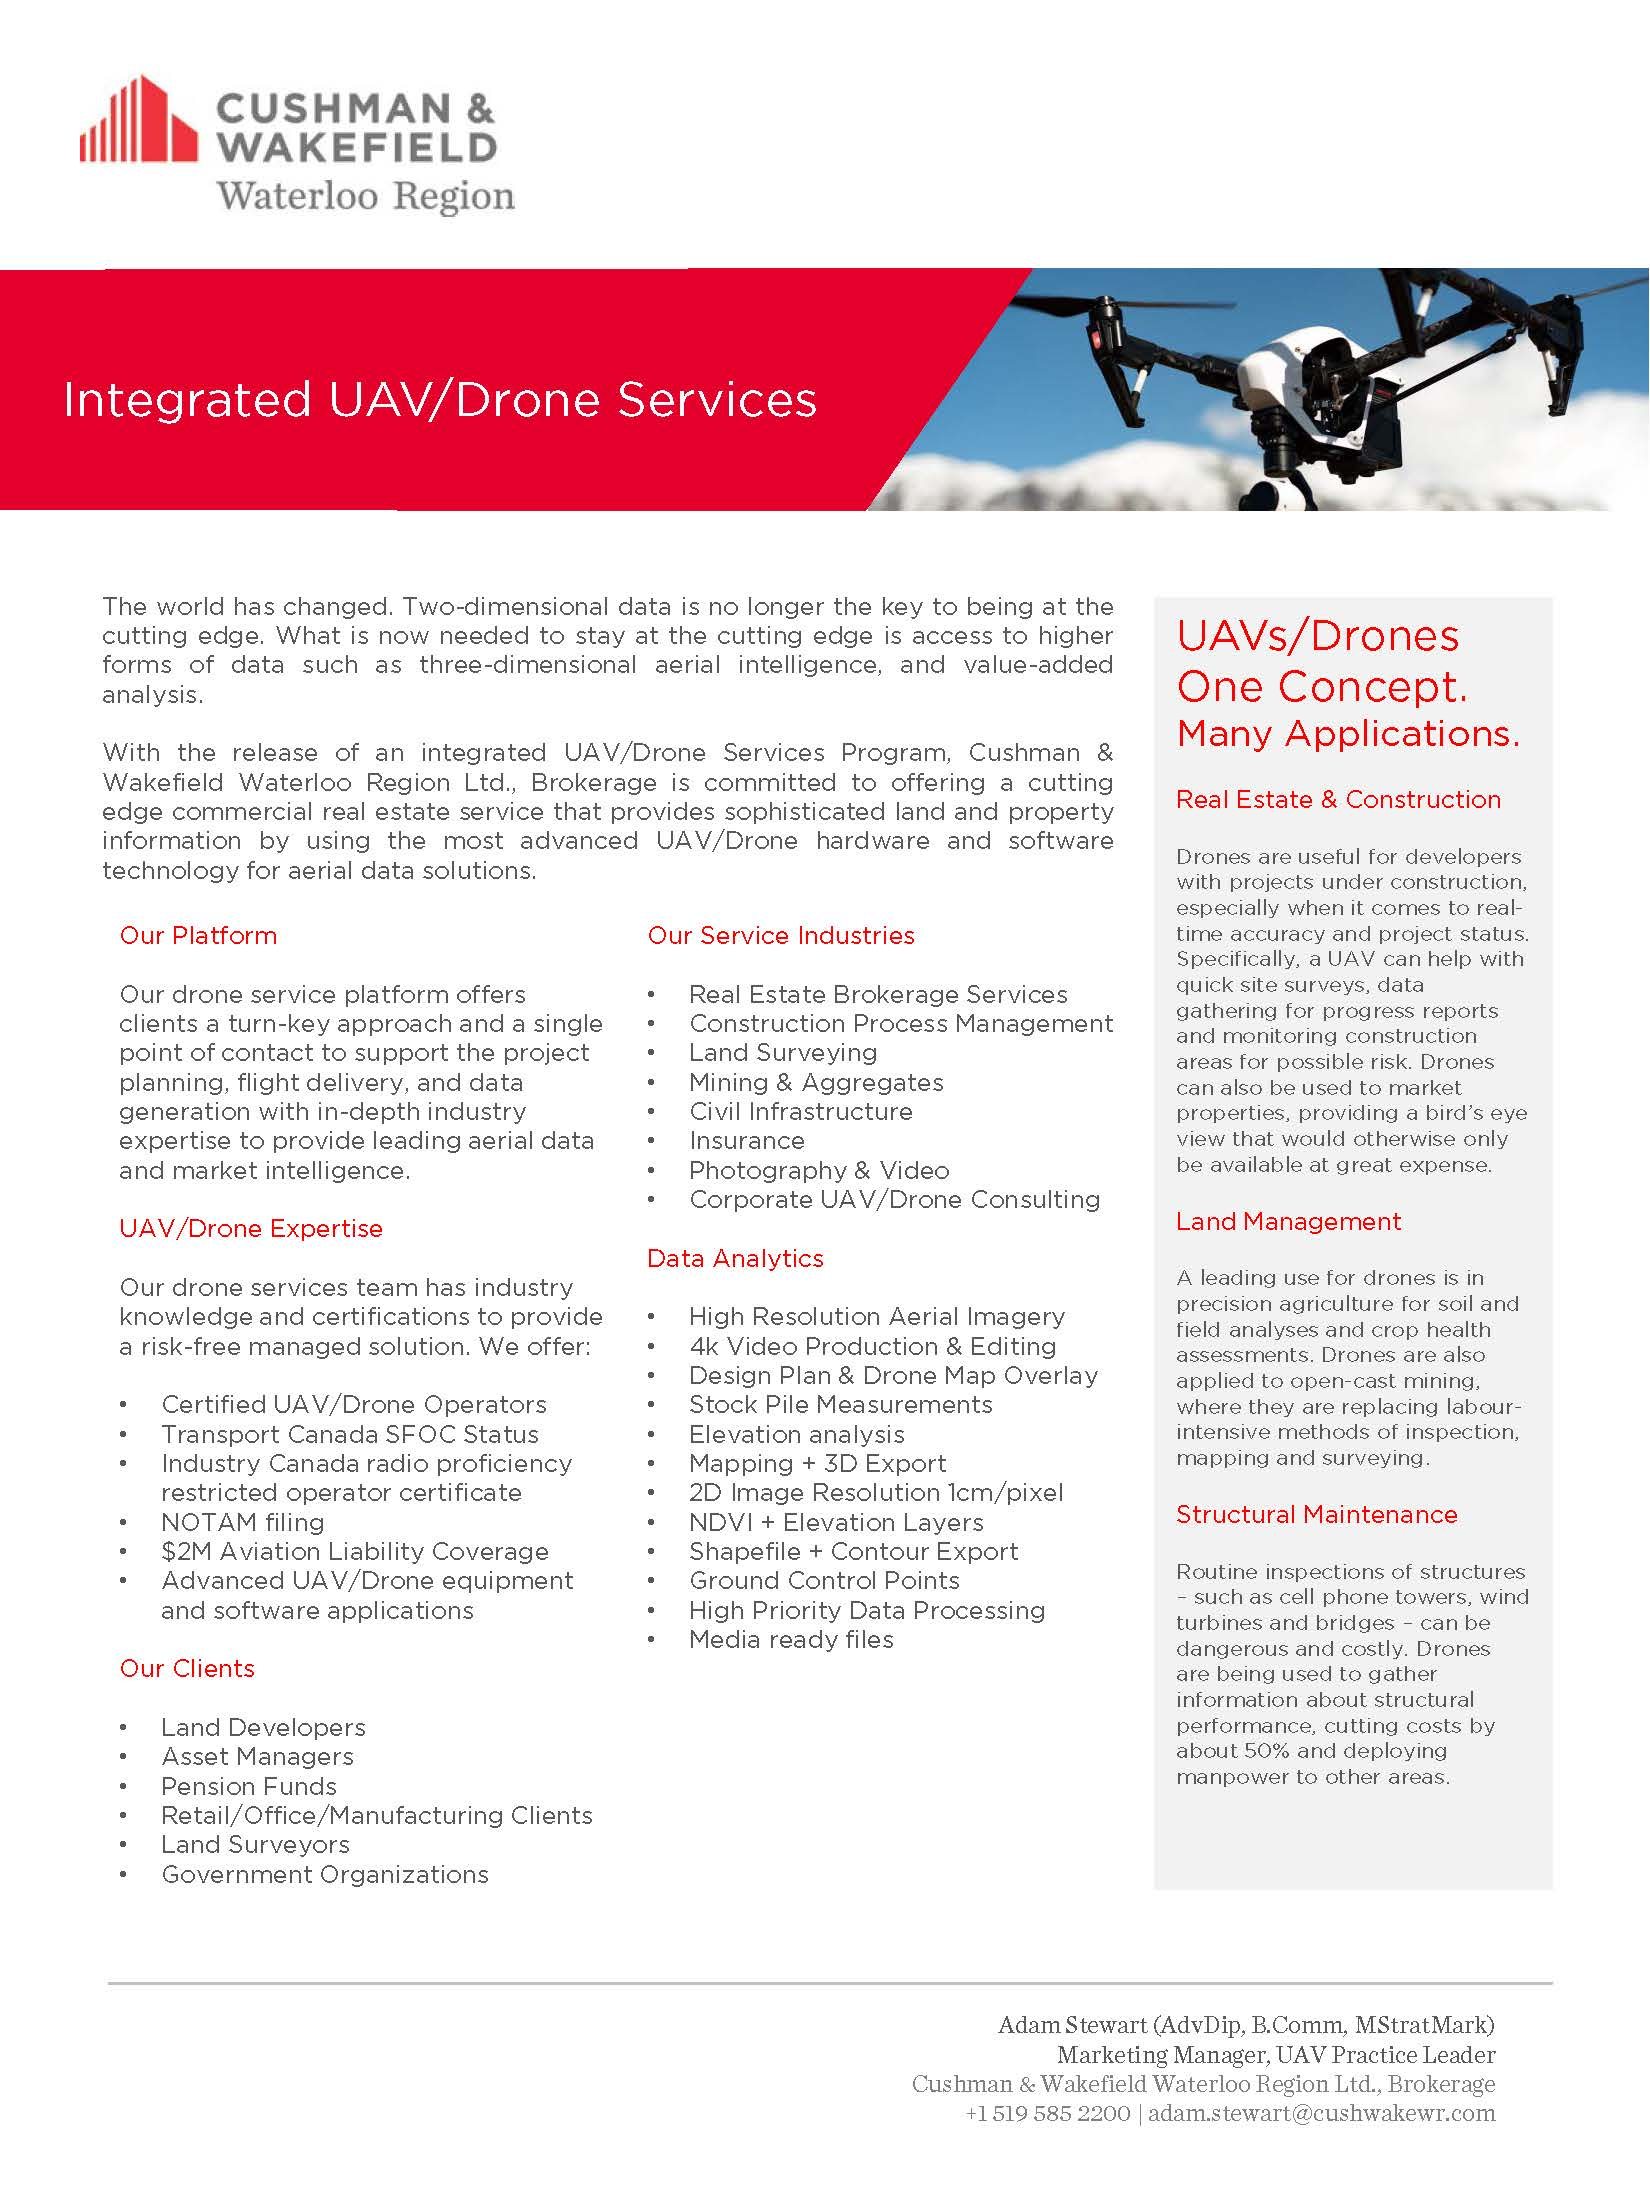 Cushman & Wakefield Integrated UAV Drone Services Feature Sheet